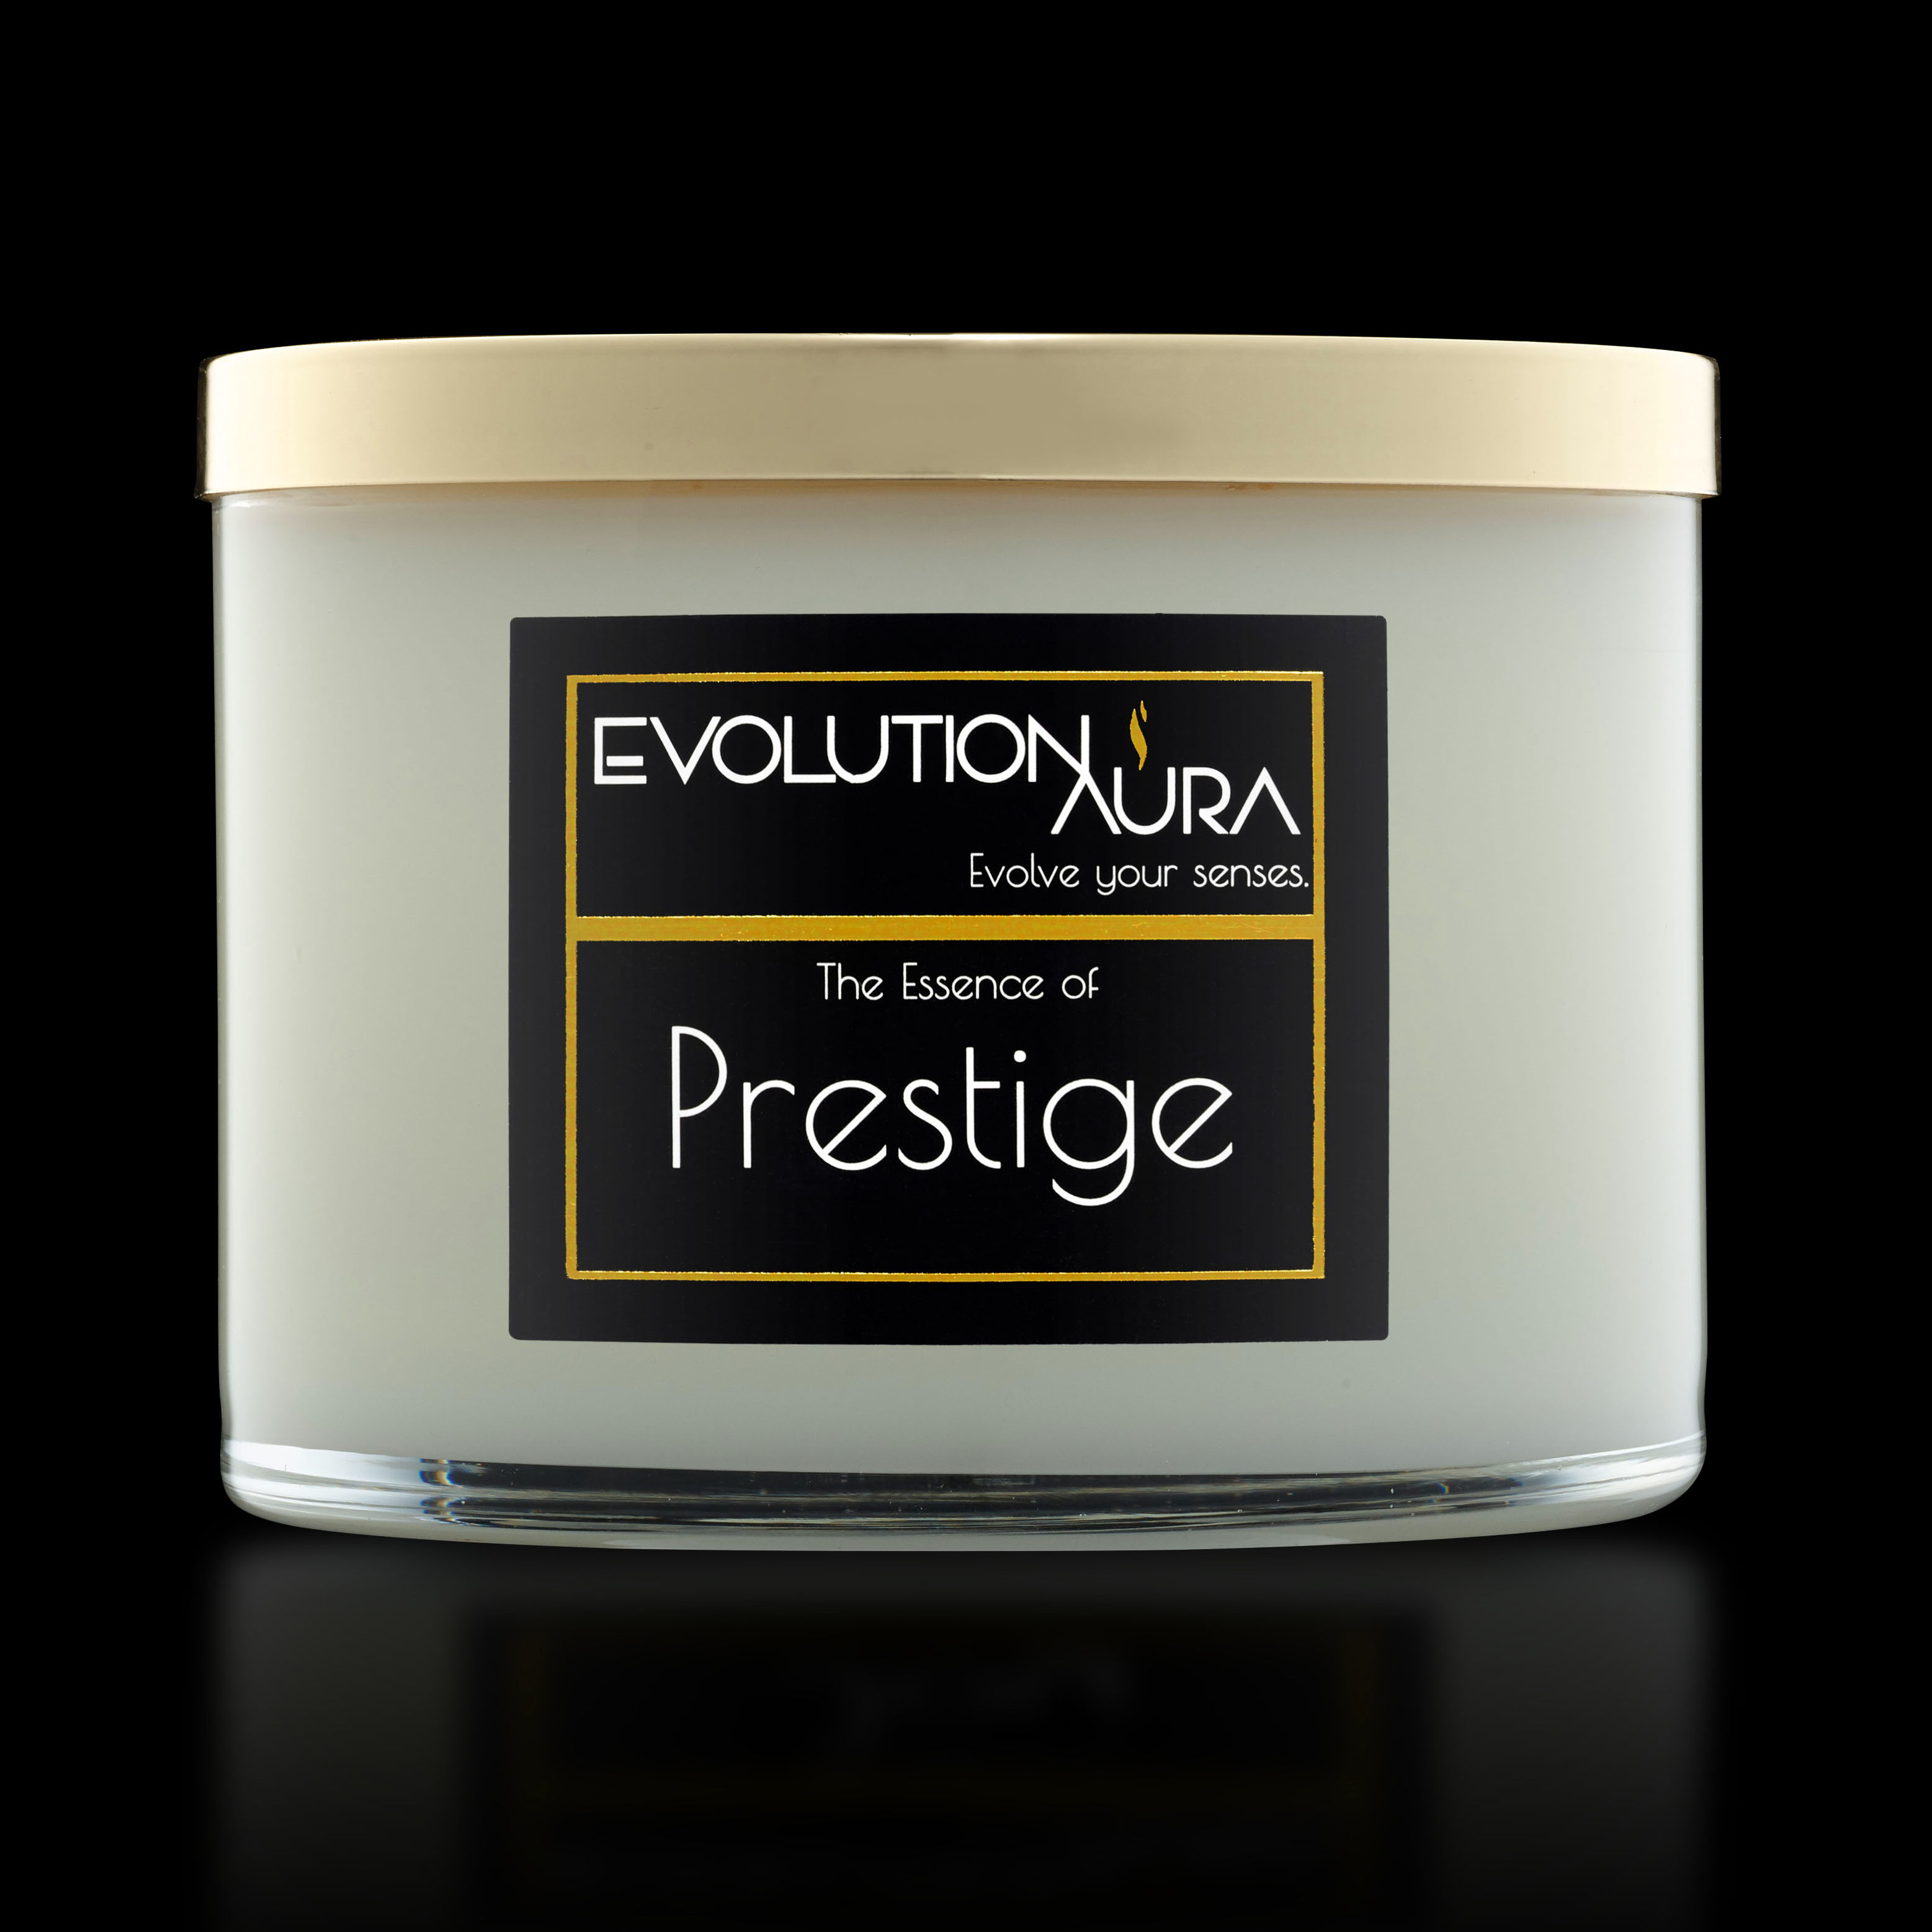 Pretige by Evolution Aura